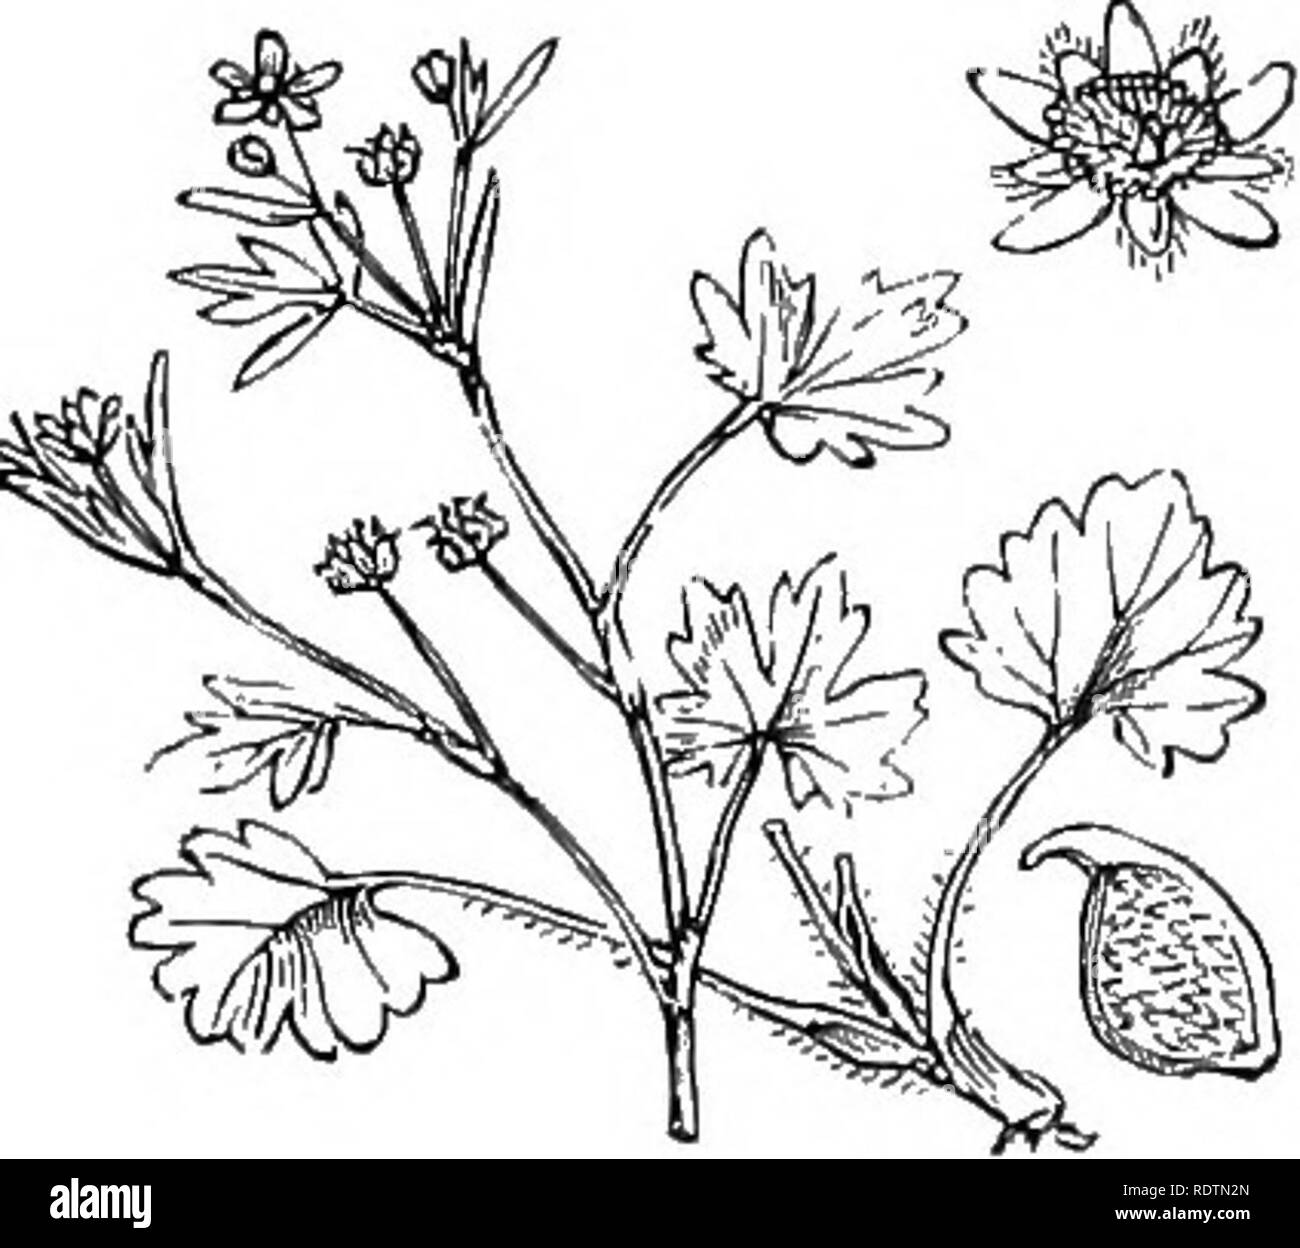 . Illustrations of the British flora: a series of wood engravings, with dissections, of British plants. Botany; Botany. 20. Ranunculus bulbosus, L. Bulbous R., Y. 21. Ranunculus hirsulus, Curt. R. Sardous, Cr., parvulus, L. Hairy R.; Y.. Please note that these images are extracted from scanned page images that may have been digitally enhanced for readability - coloration and appearance of these illustrations may not perfectly resemble the original work.. Fitch, W. H. (Walter Hood), 1817-1892; Smith, George Worthington, 1835-1917; Bentham, George, 1800-1884. Handbook of the British flora. Londo - Stock Image